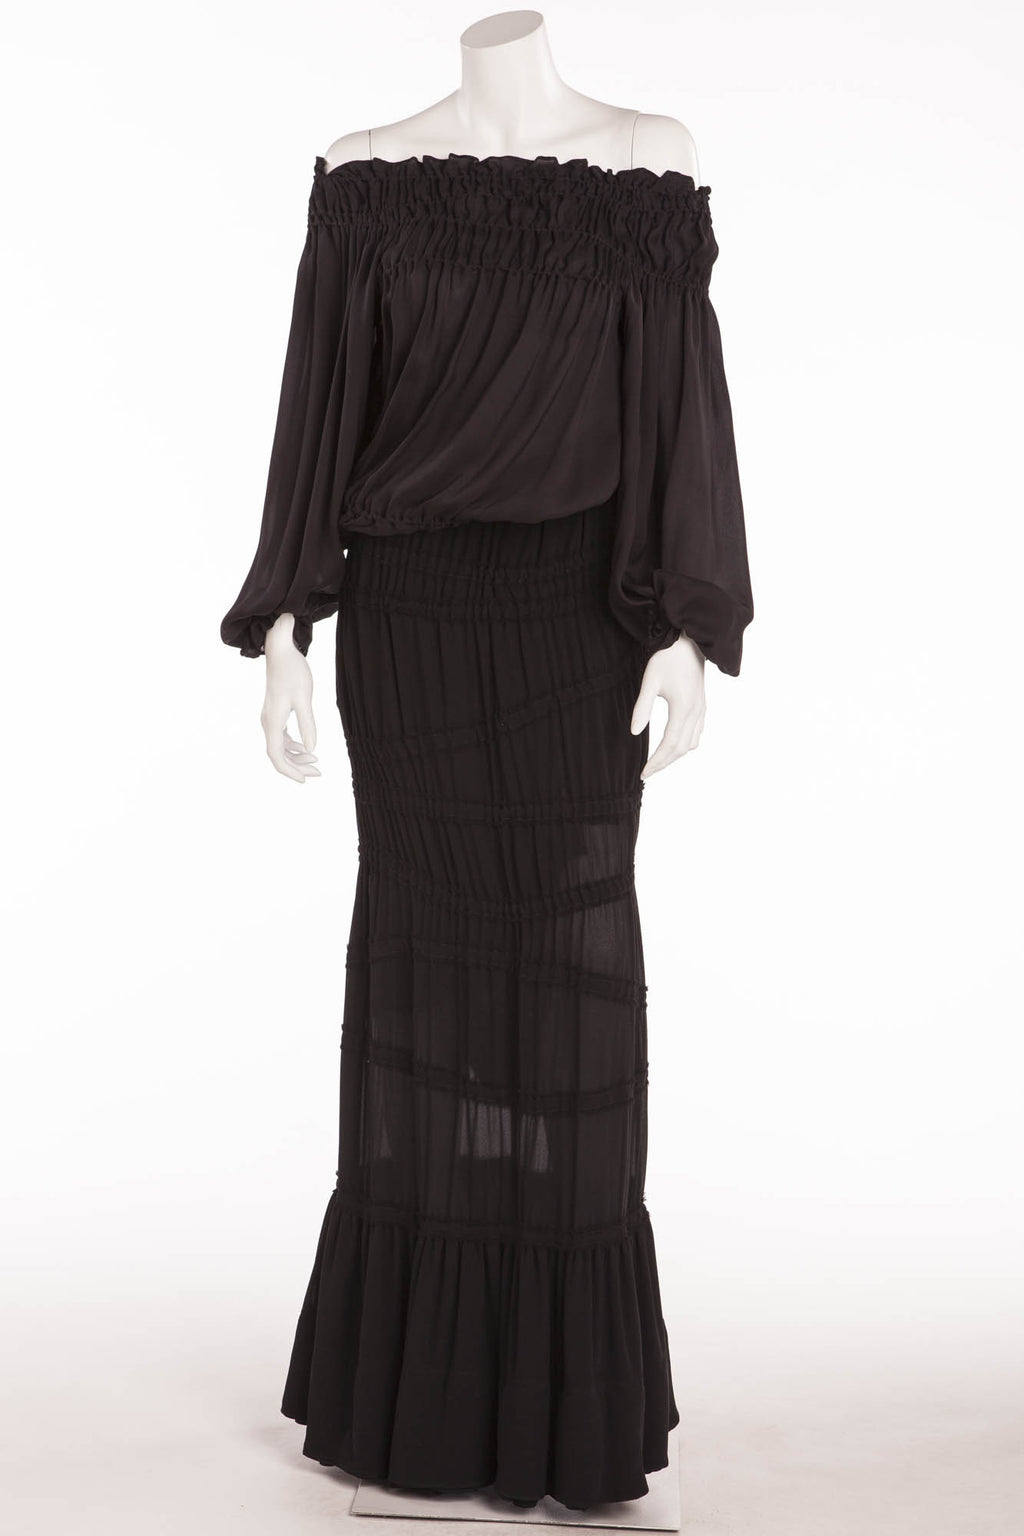 Tom Ford for Yves Saint Laurent - 2PC Black Chiffon Long Sleeve Top & Skirt with Leather Belt - FR 38